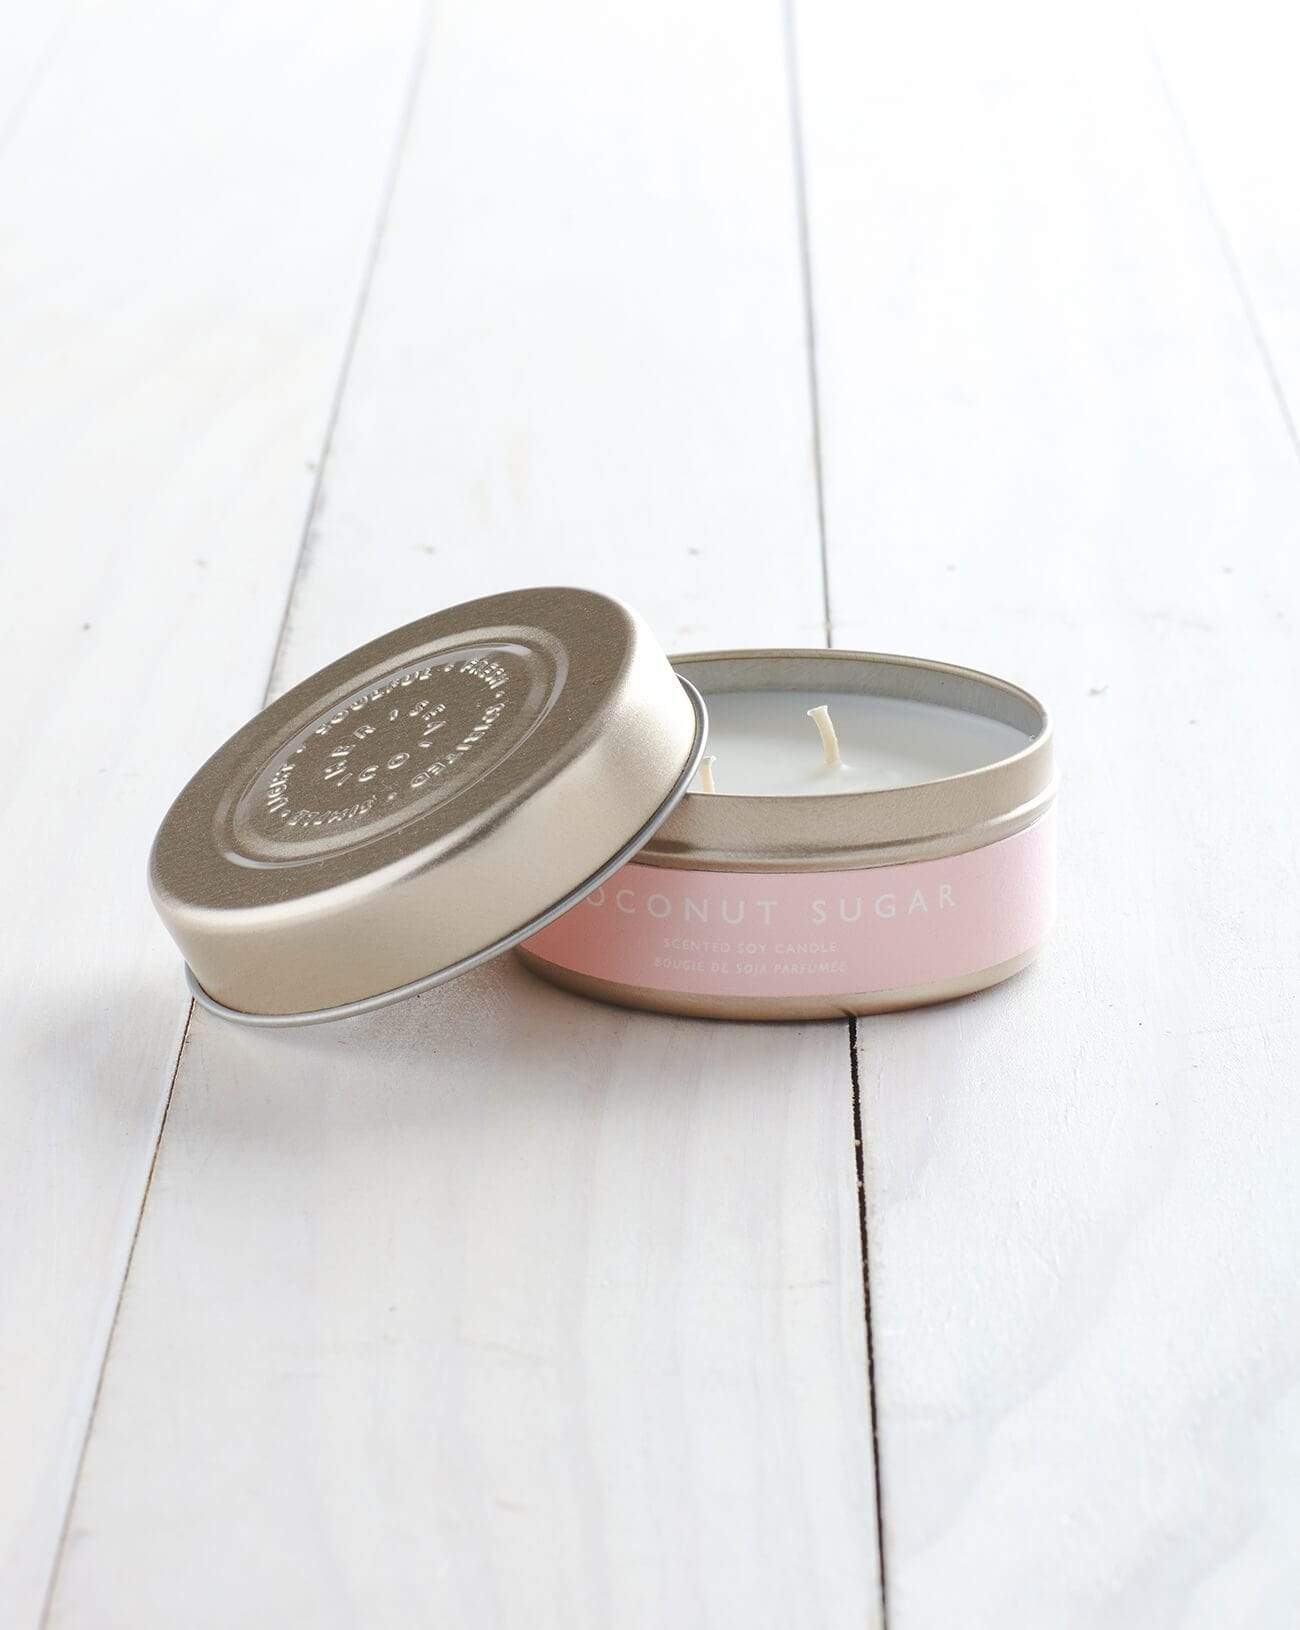 Coconut Sugar Tin Candle